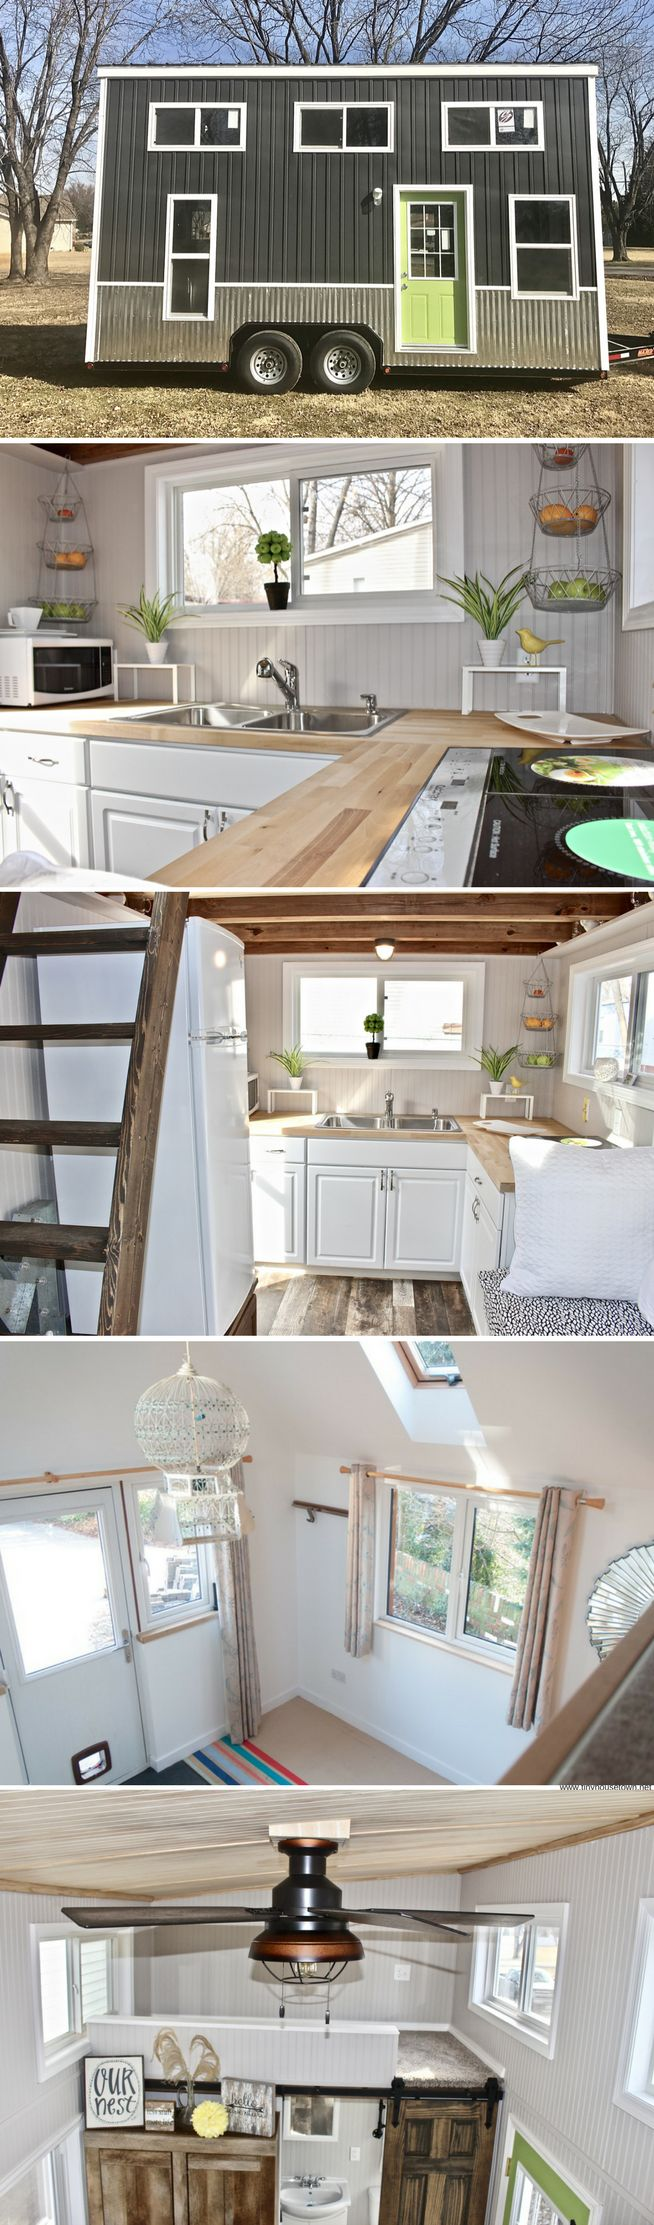 The Chic Shack (241 sq ft)